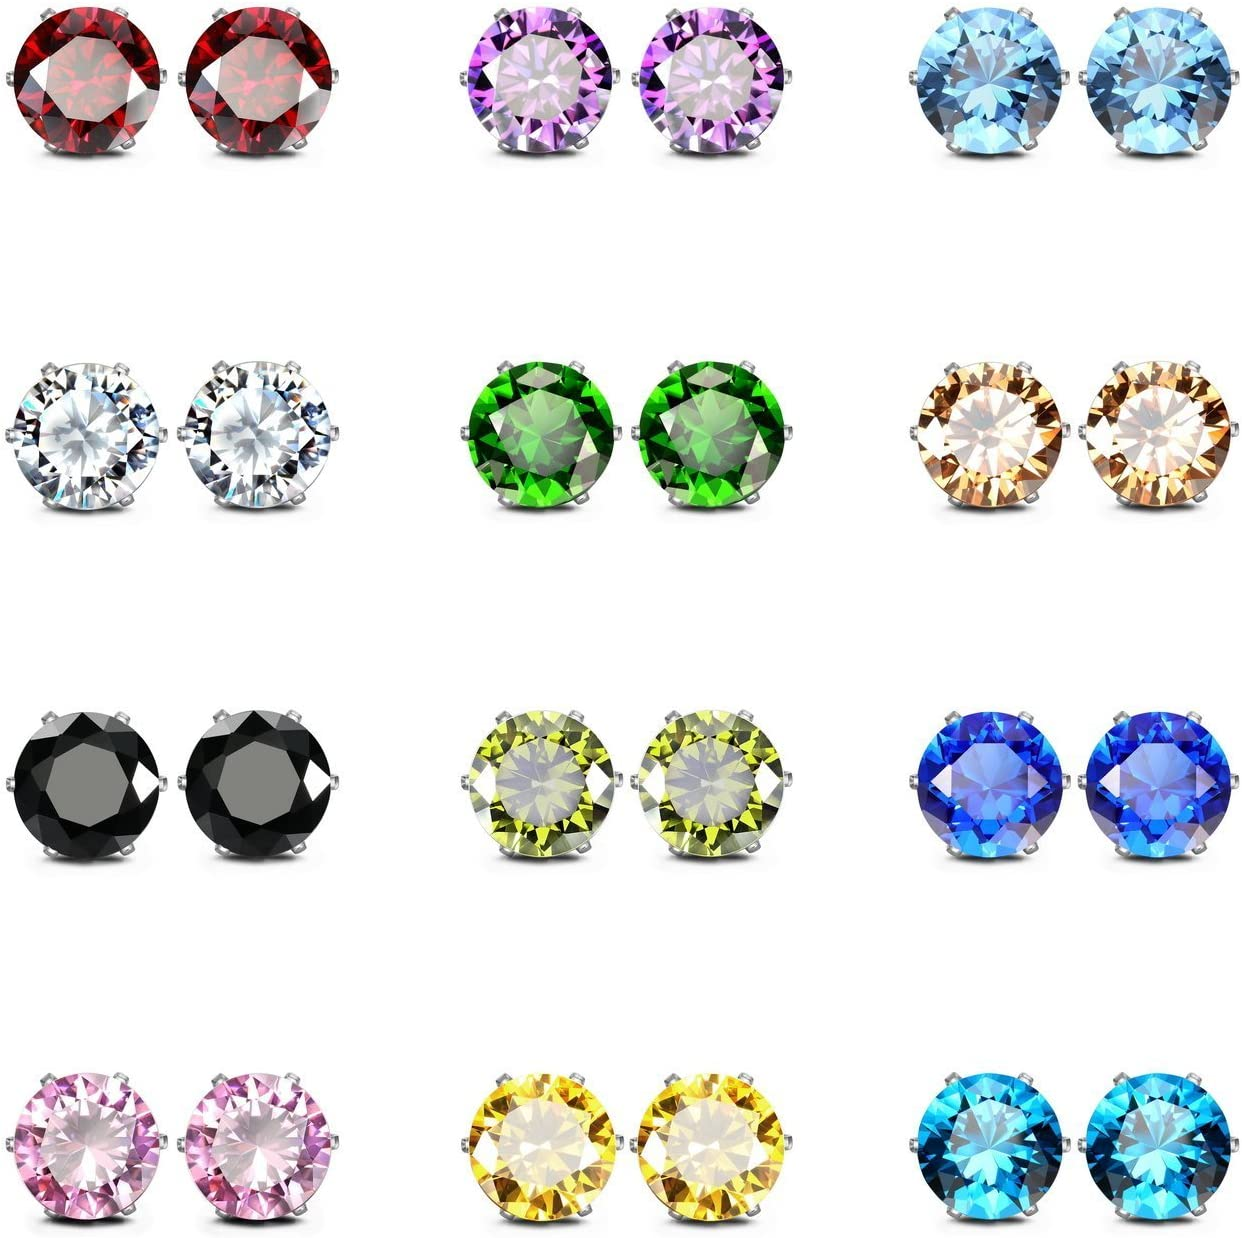 Mix and Match Everyday Stud Earring Pack Gemstone Studs 2 Pair Set on Surgical Steel Posts Hypoallergenic for Sensitive Skin